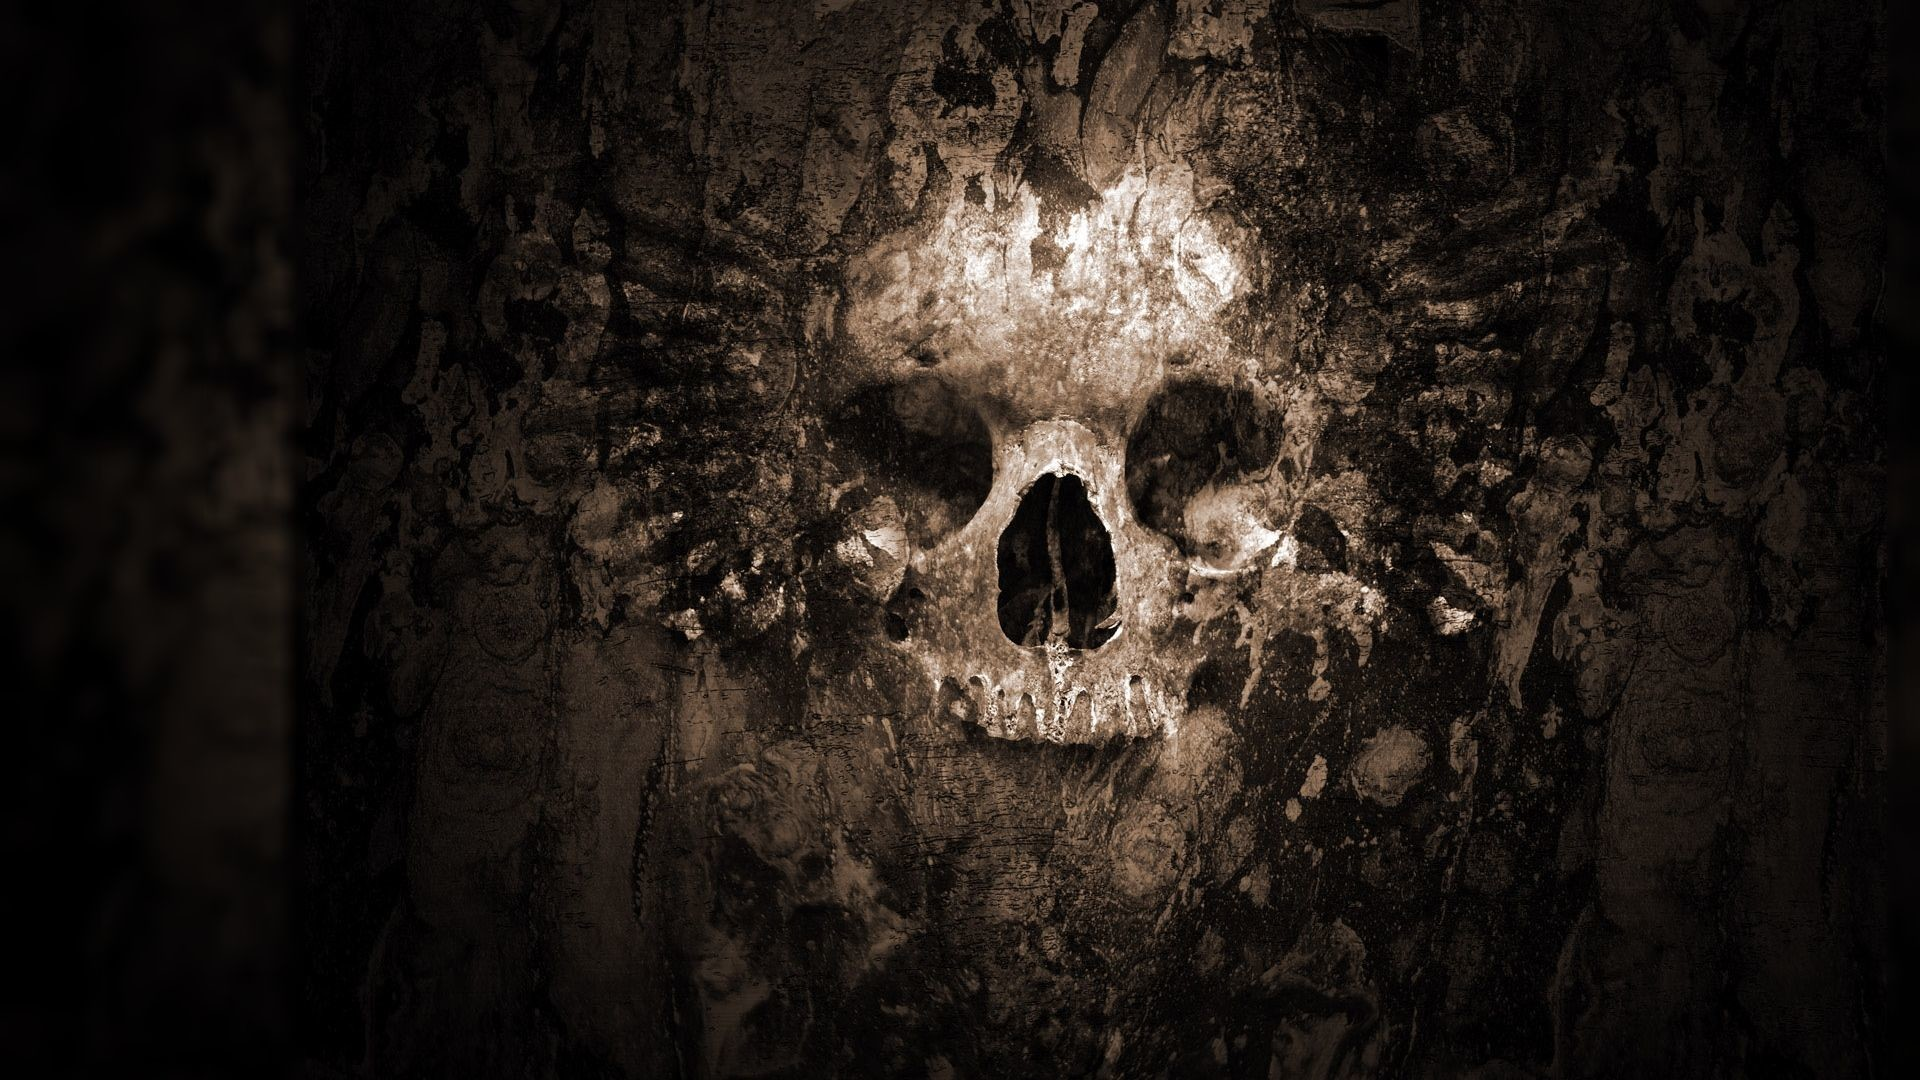 Res: 1920x1080, Scary Desktop Wallpapers - http://wallpaperzoo.com/scary-desktop .